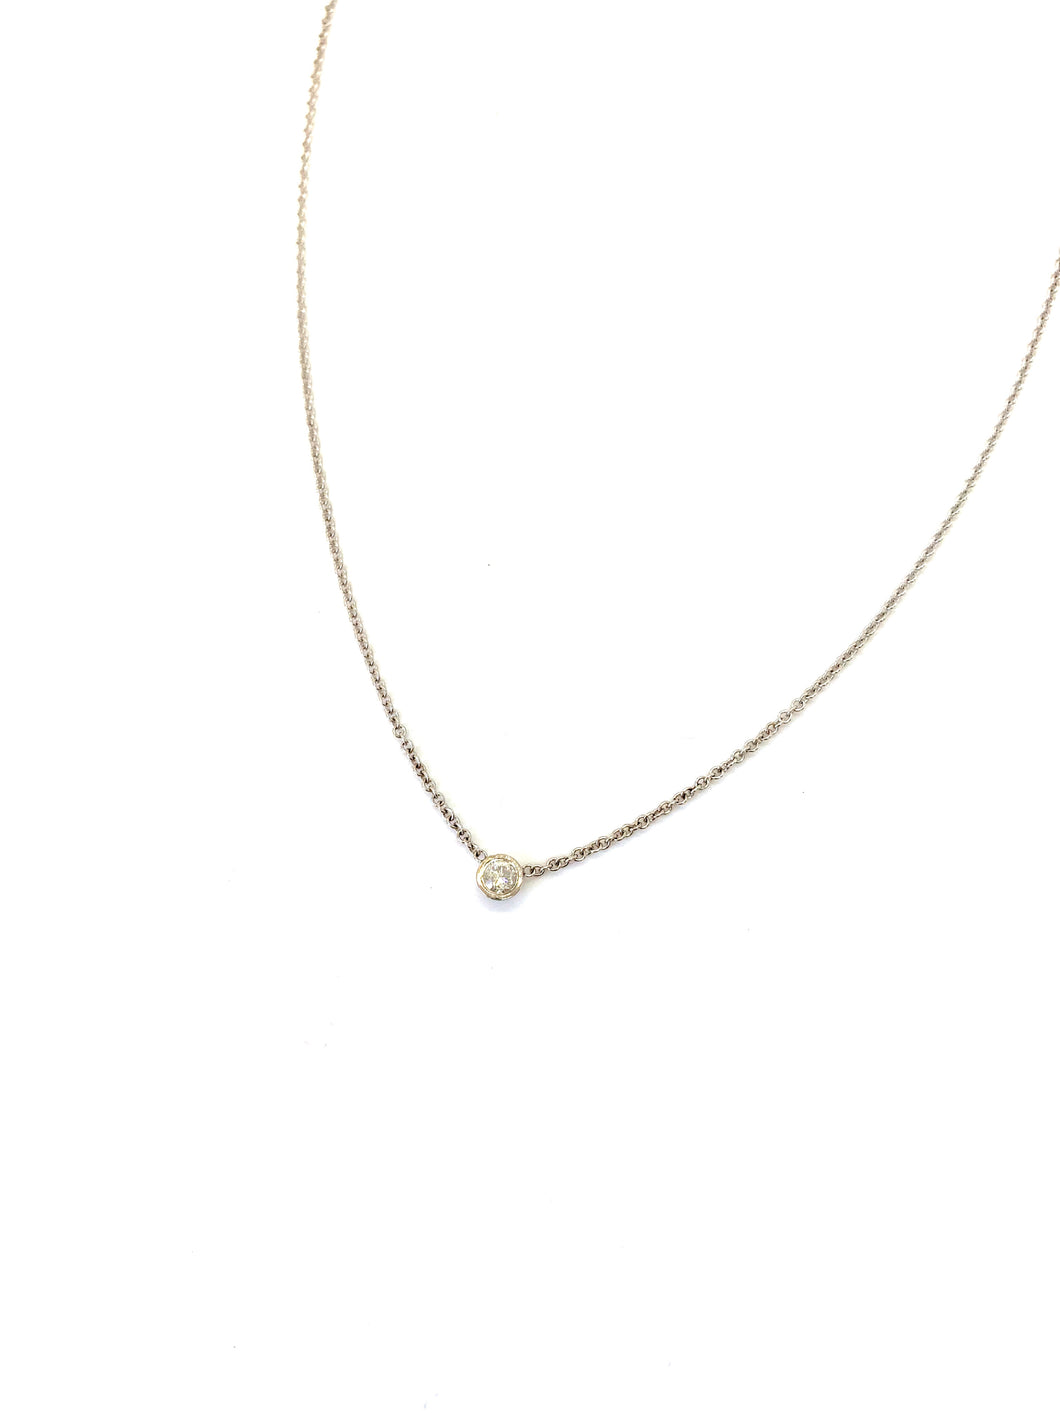 Diamond Energy Necklace in White Gold